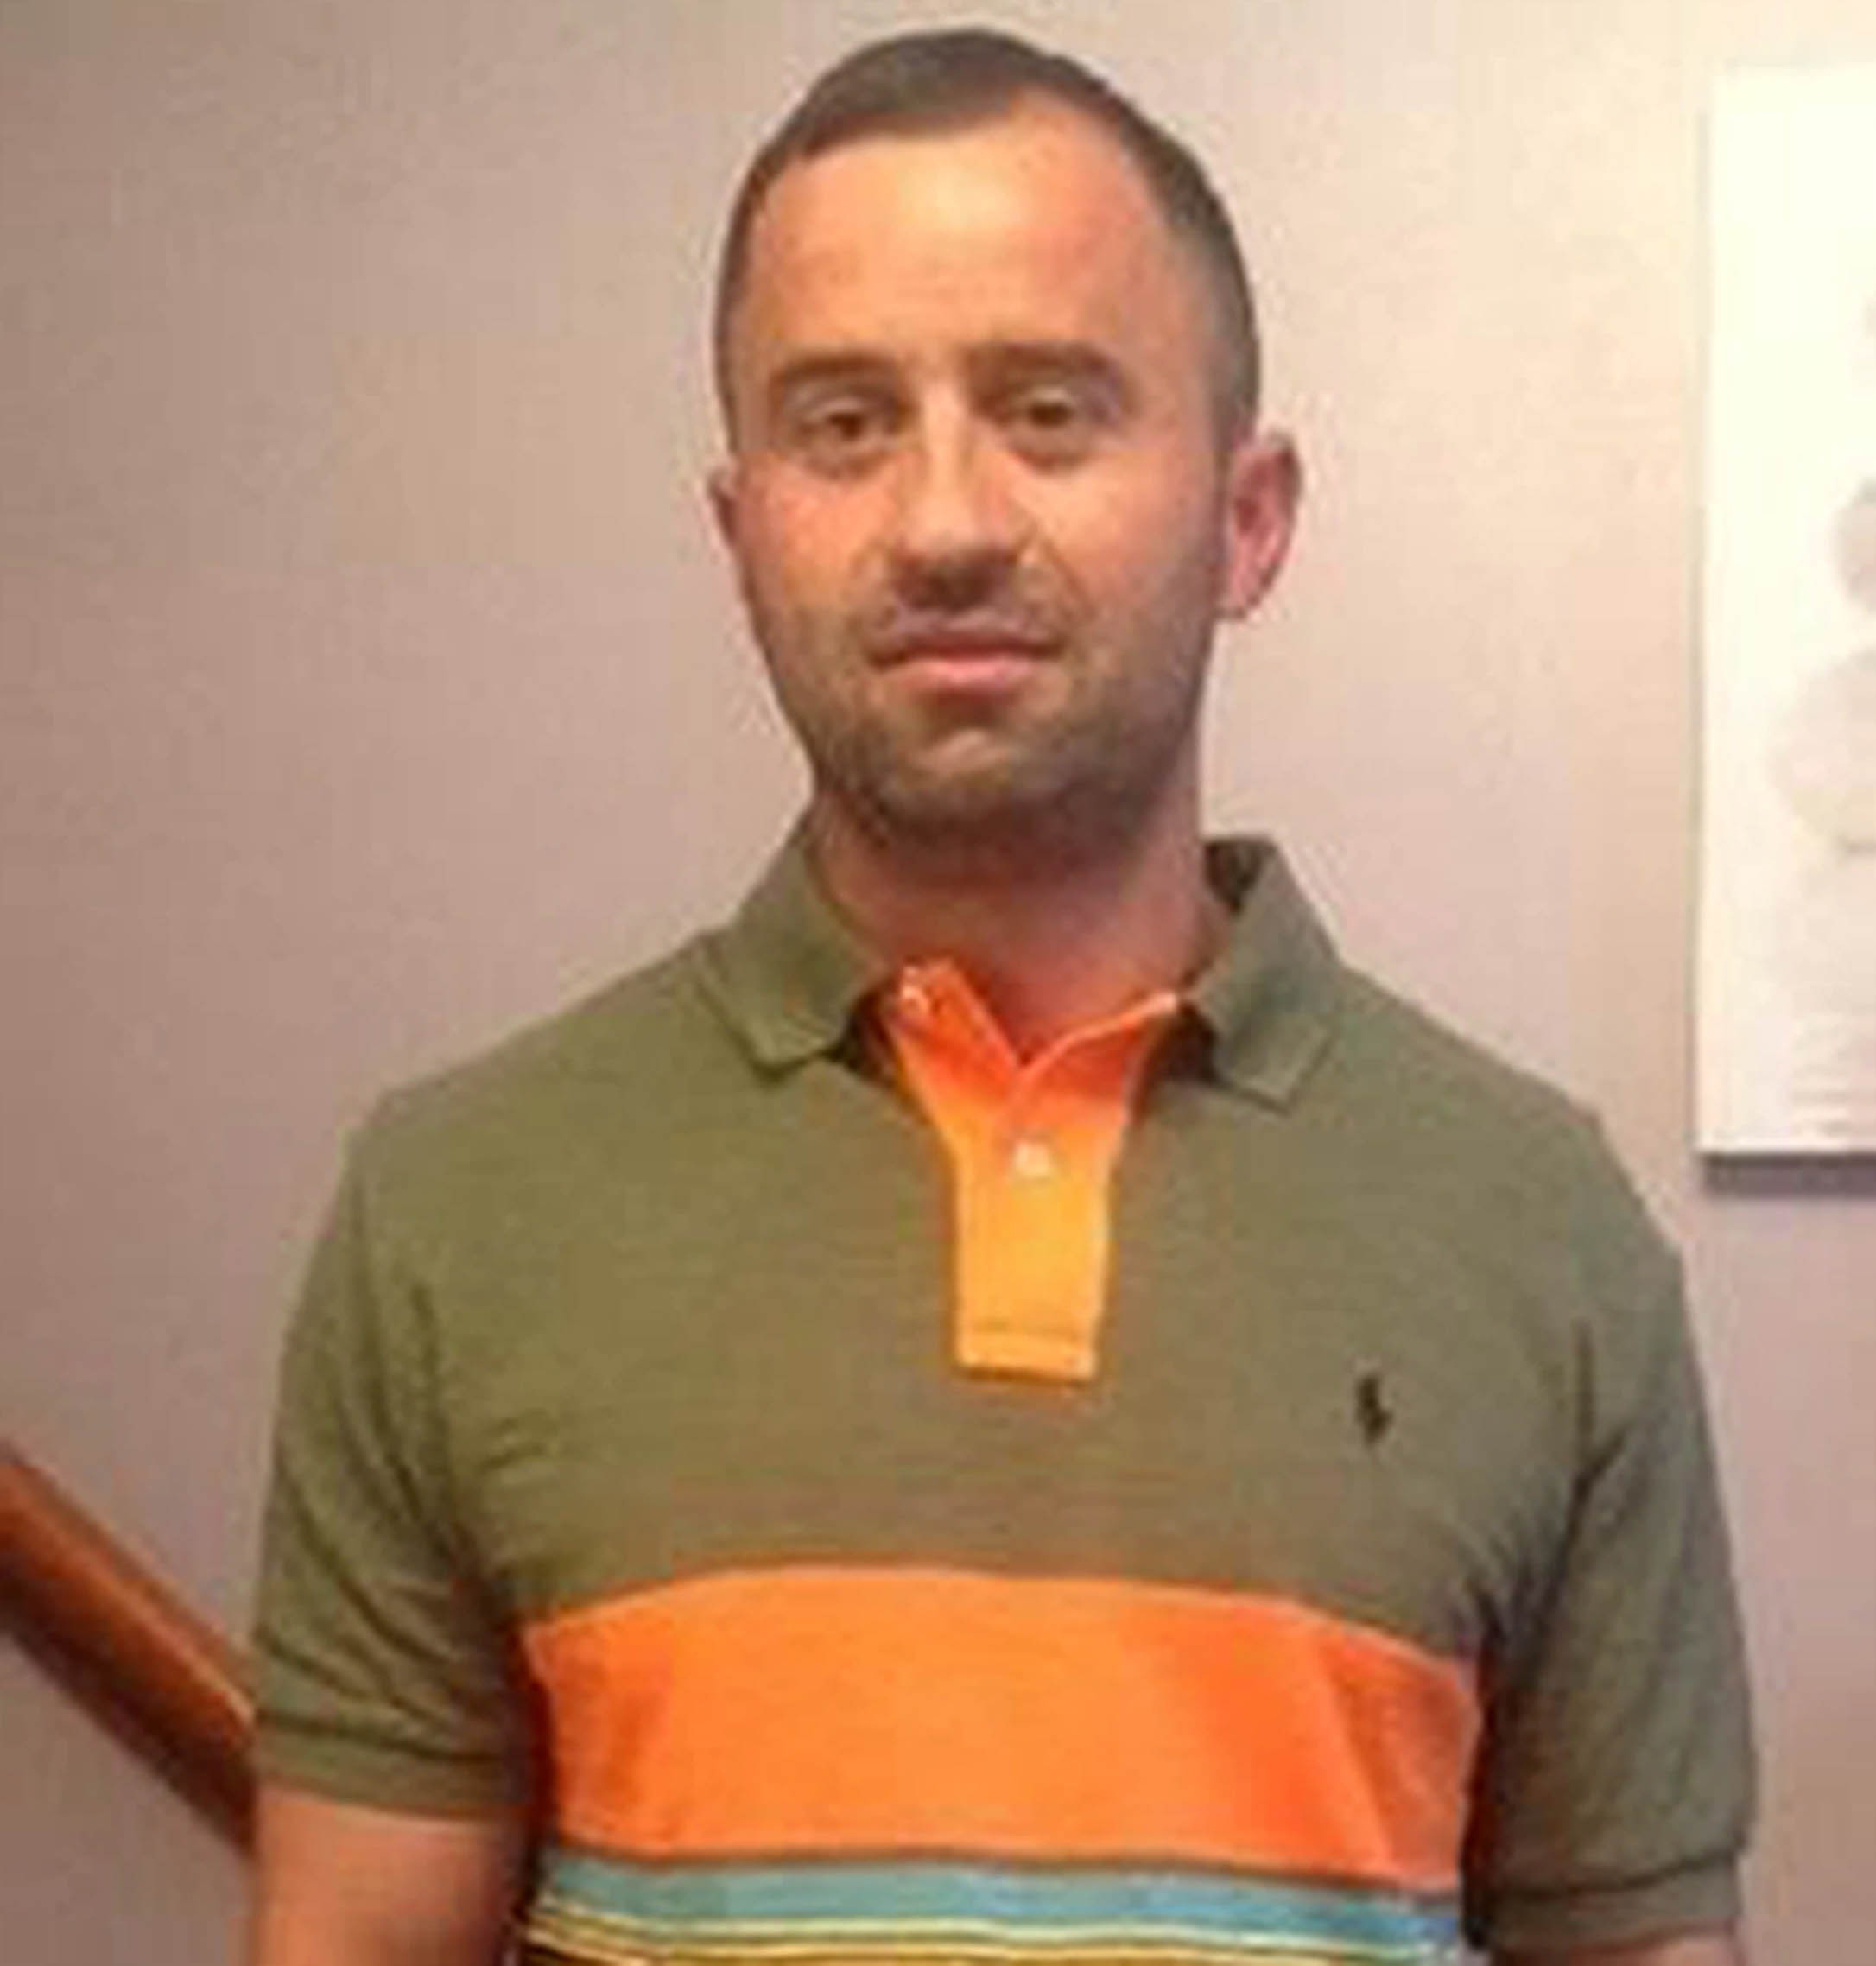 Xhem Krasniqi, known as Jim, was shot in Selbourne Road, Hove, at about 11pm on May 18 last year